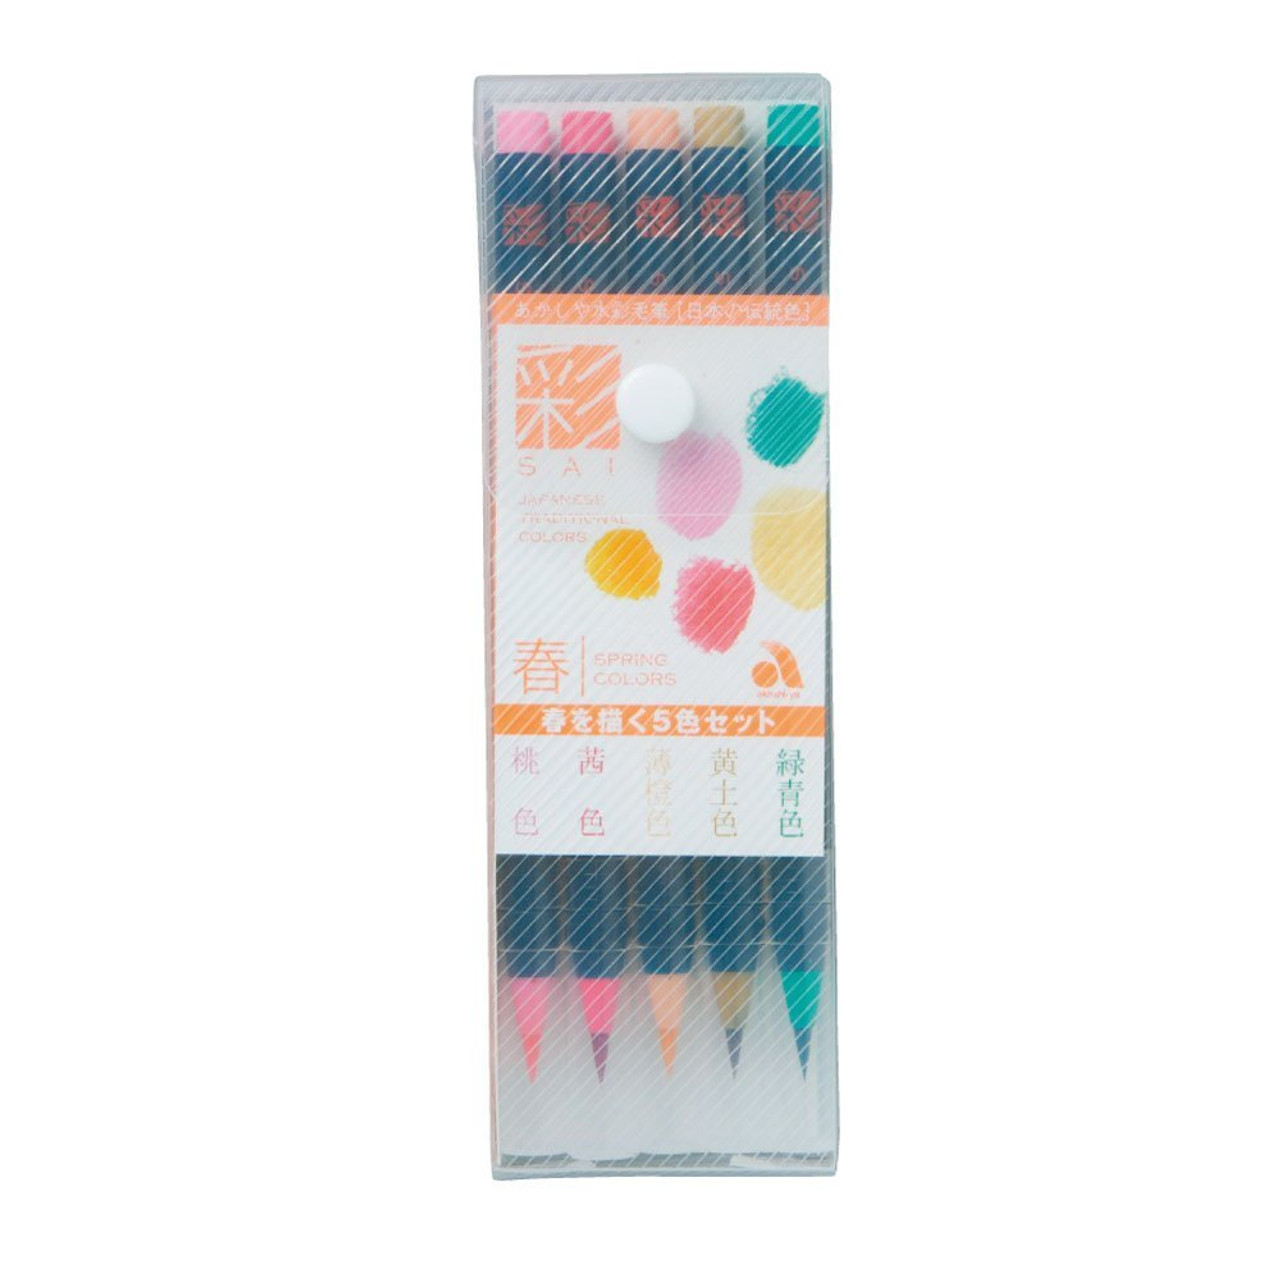 Akashiya Fude Brush Pen Sai 5 Winter Color Set CA200//5VD From Japan